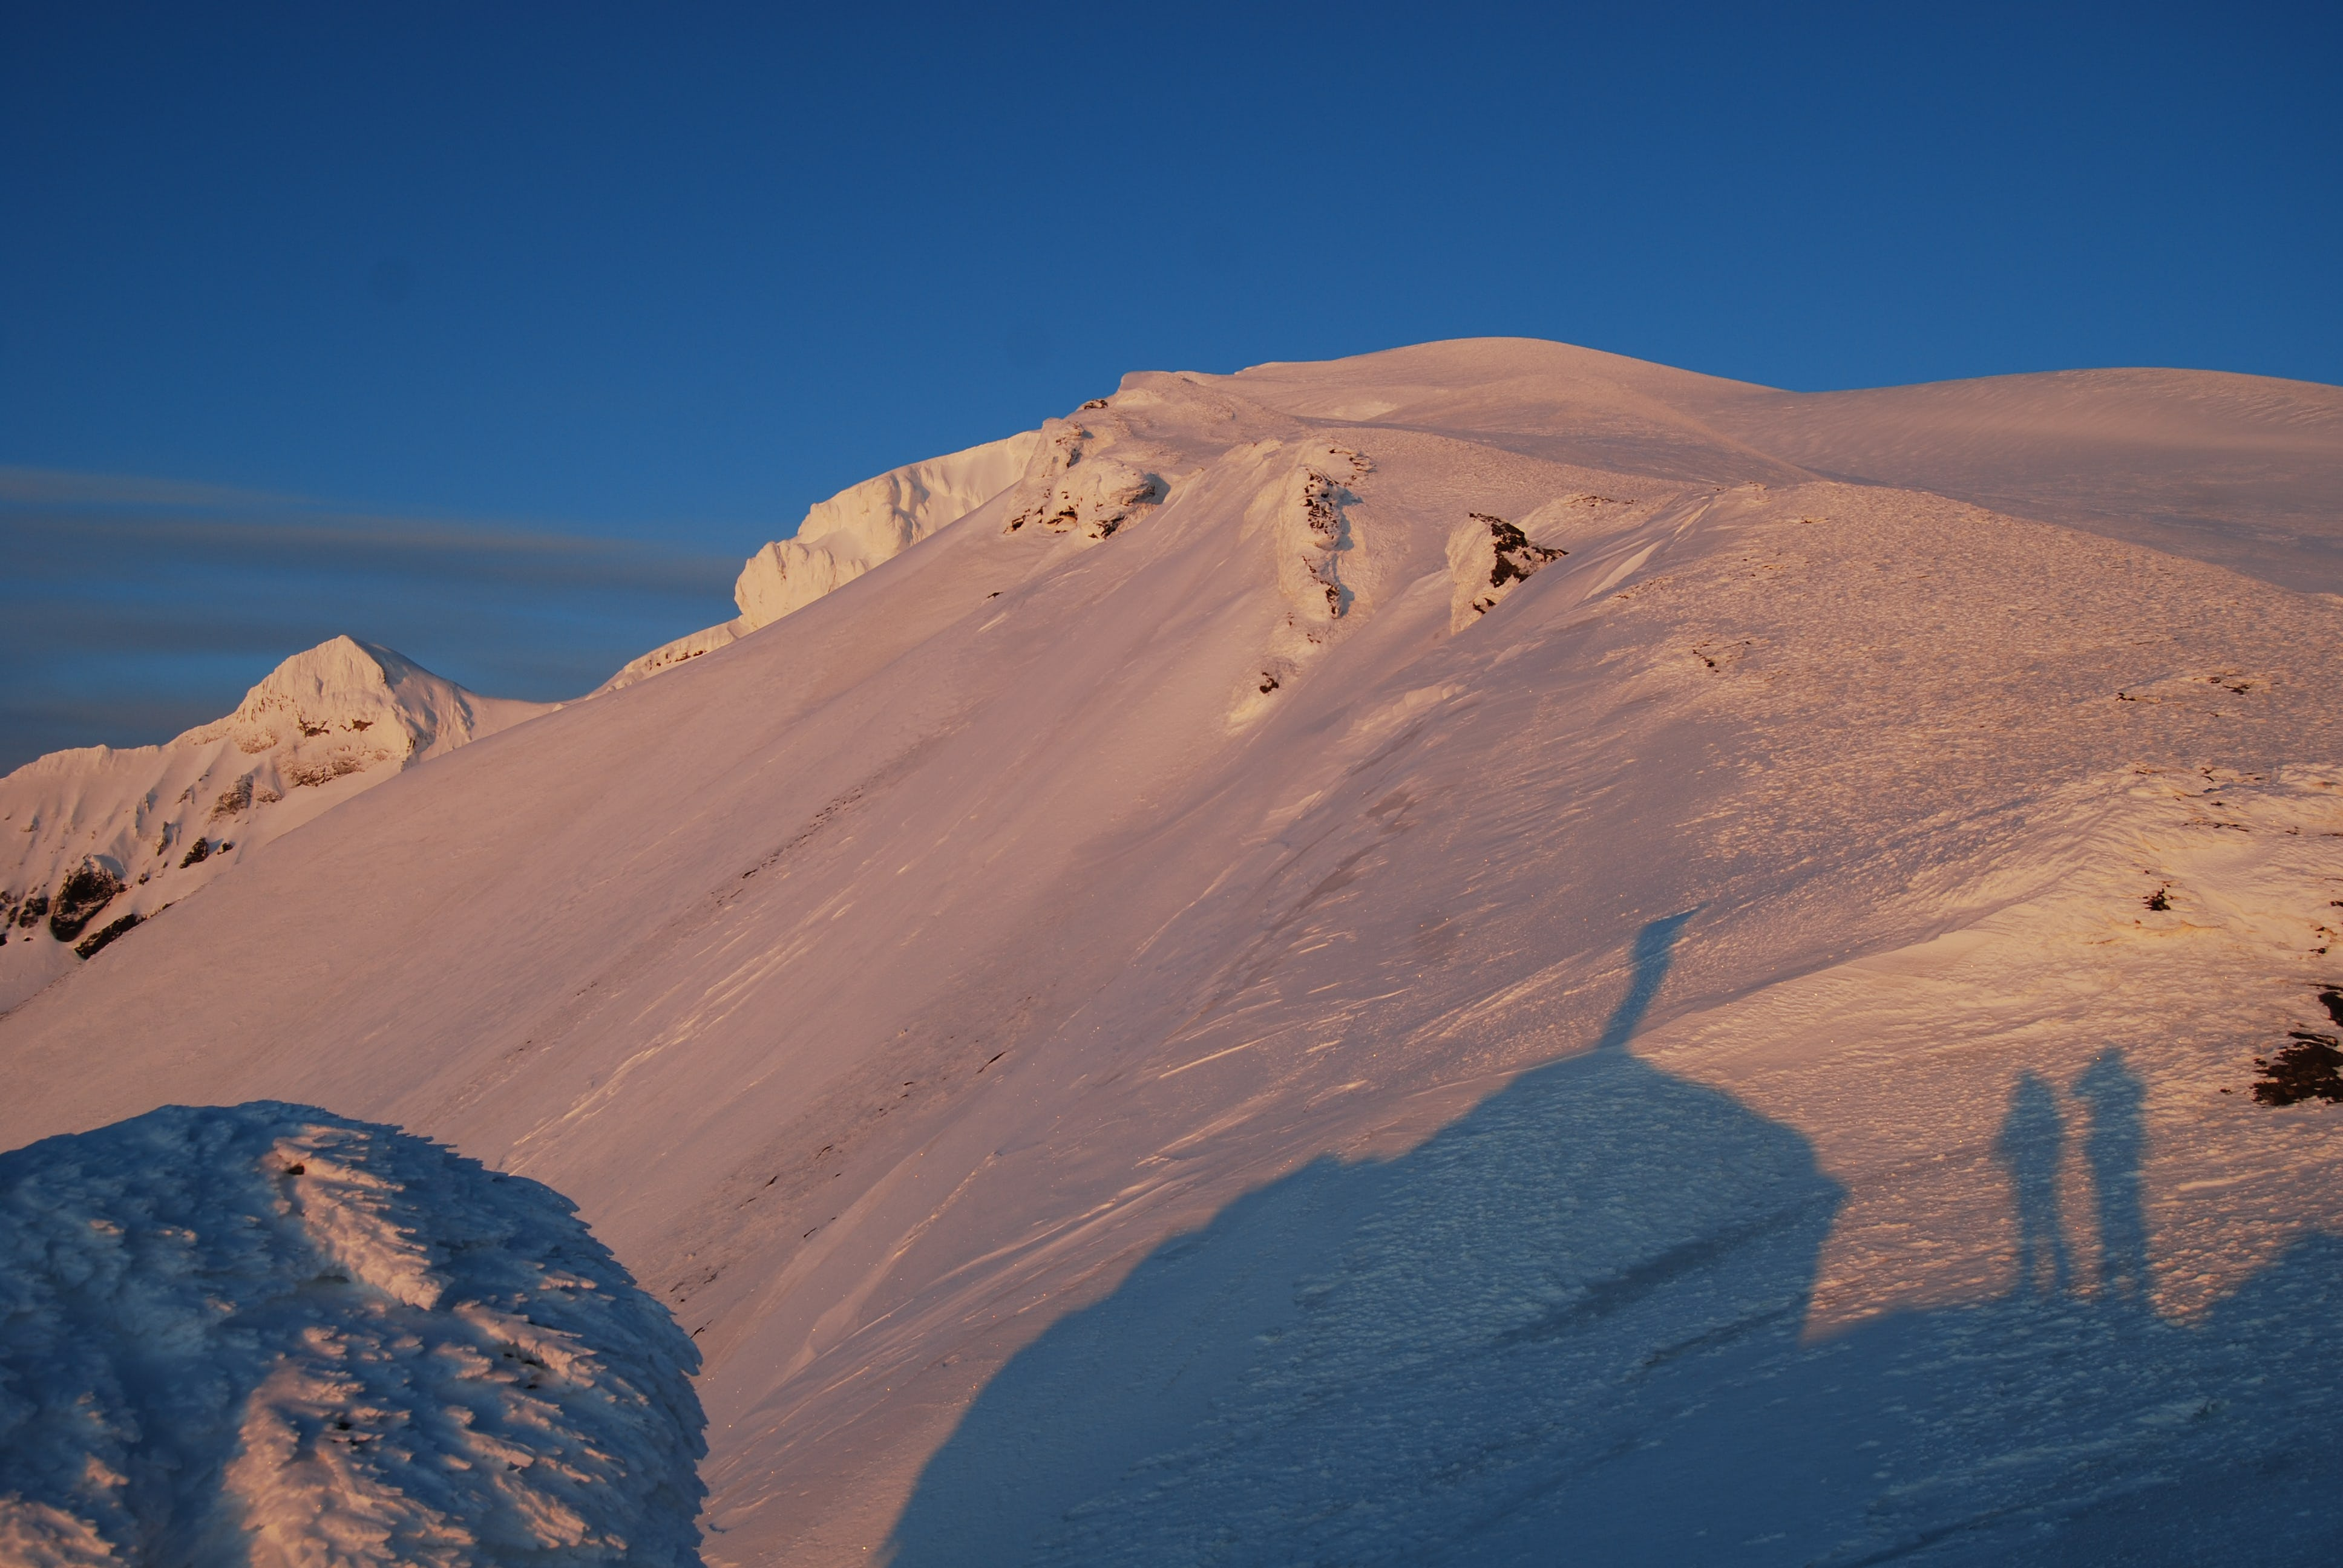 The midnight sun casting its golden glow on the snow-drenched hills of Mt. Snæfell.